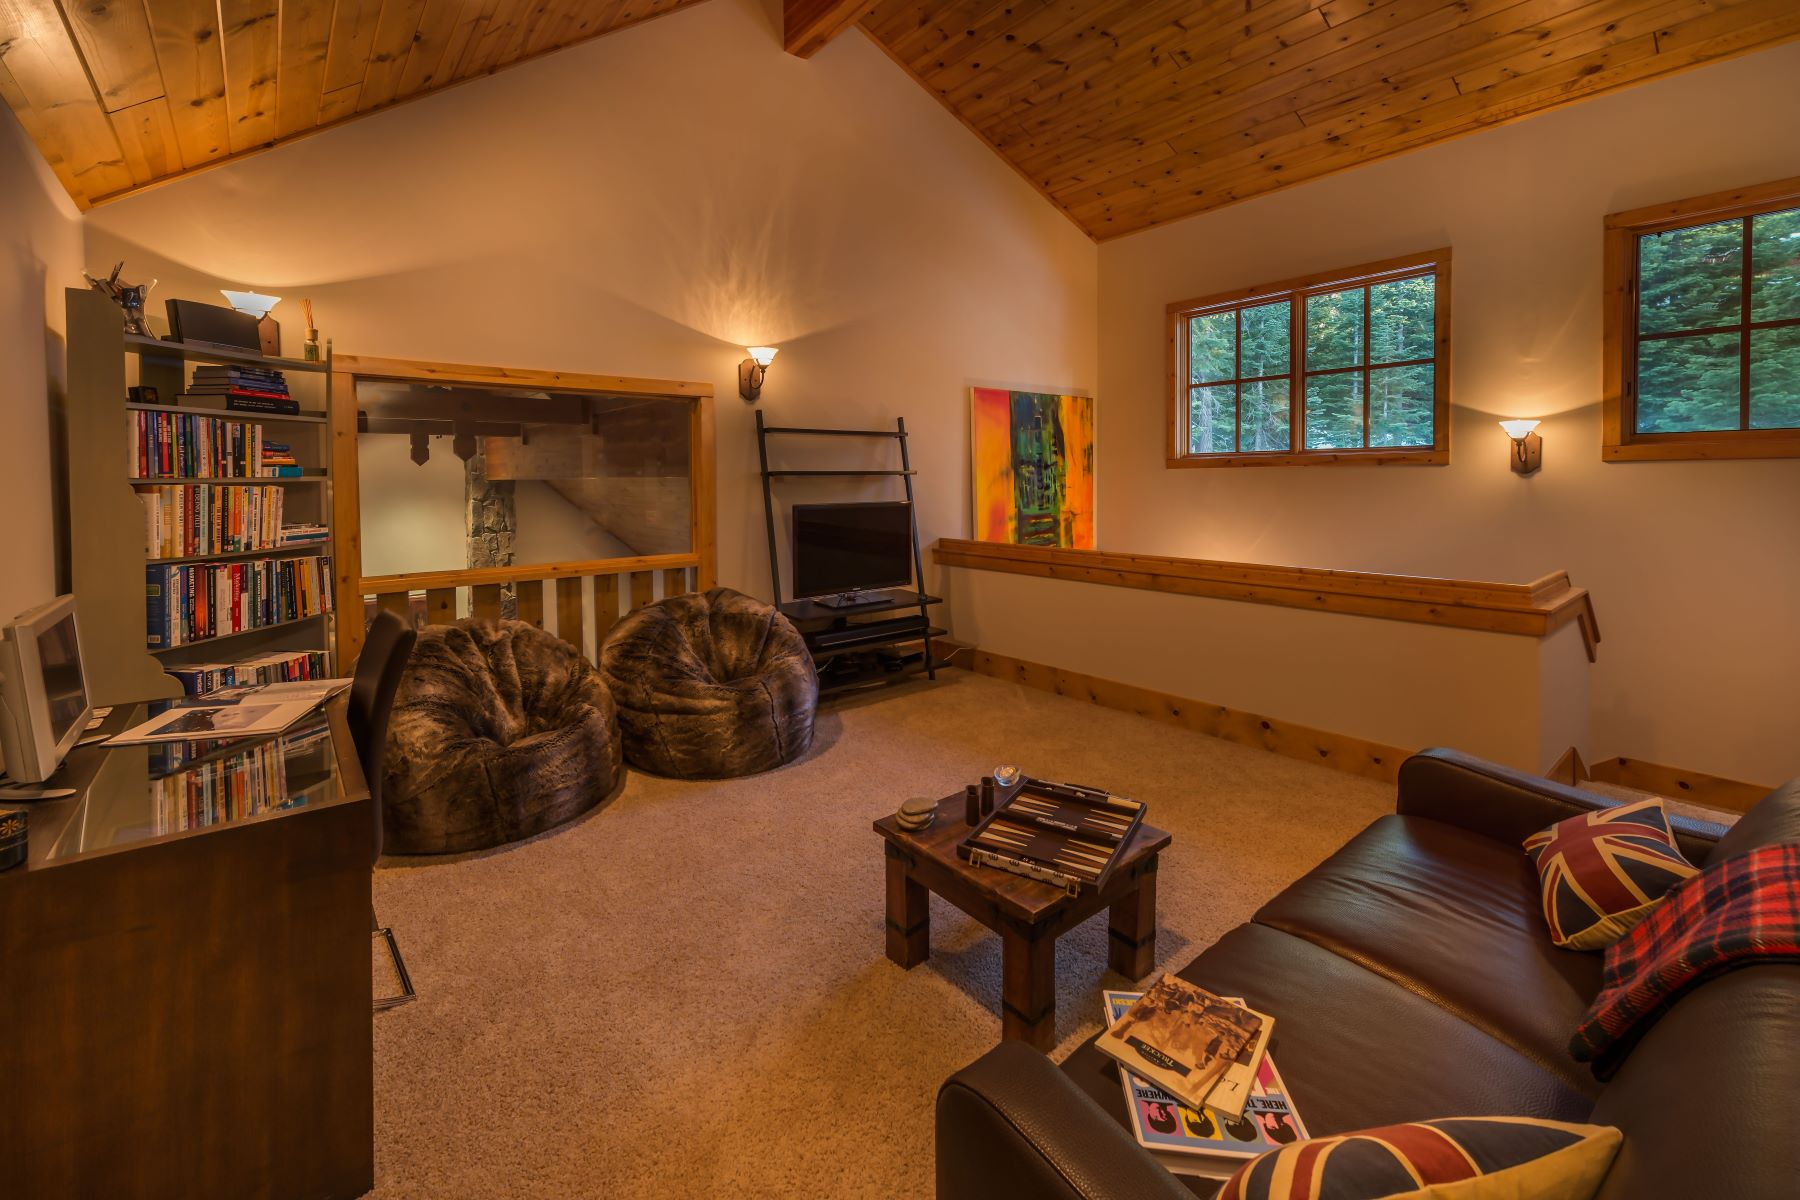 Additional photo for property listing at 1805 Wood Points Way, Truckee, CA 1805 Woods Point Way Truckee, California 96161 United States